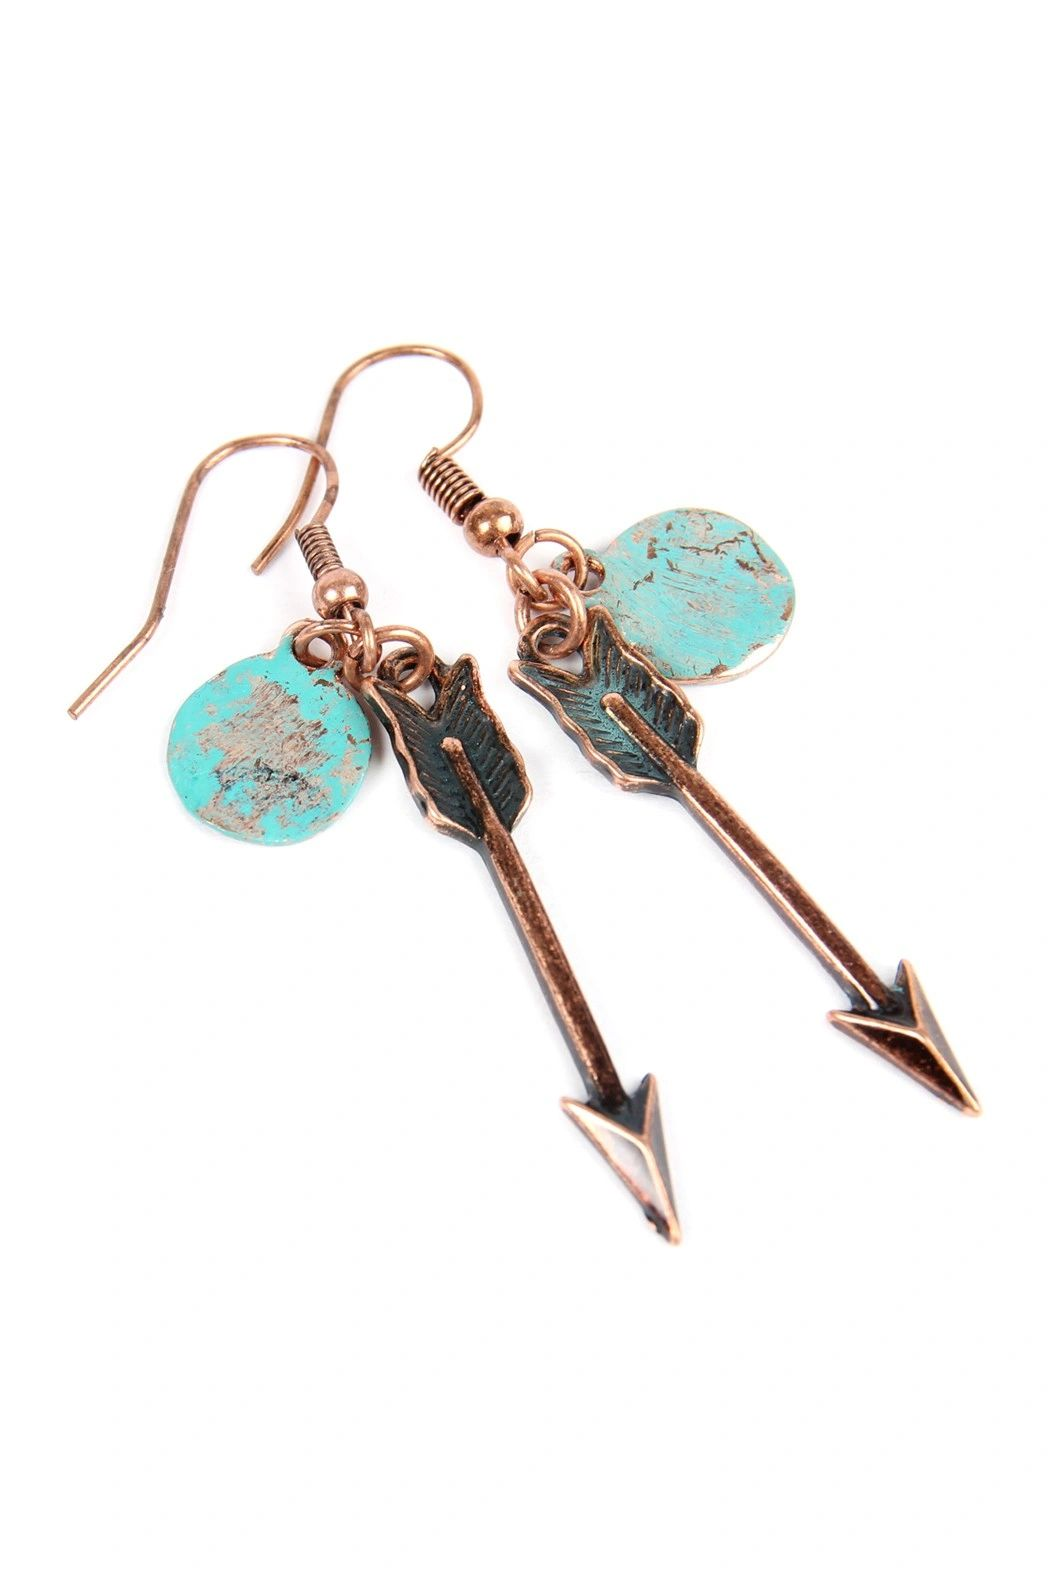 ARROW WITH HAMMERED DISC EARRINGS